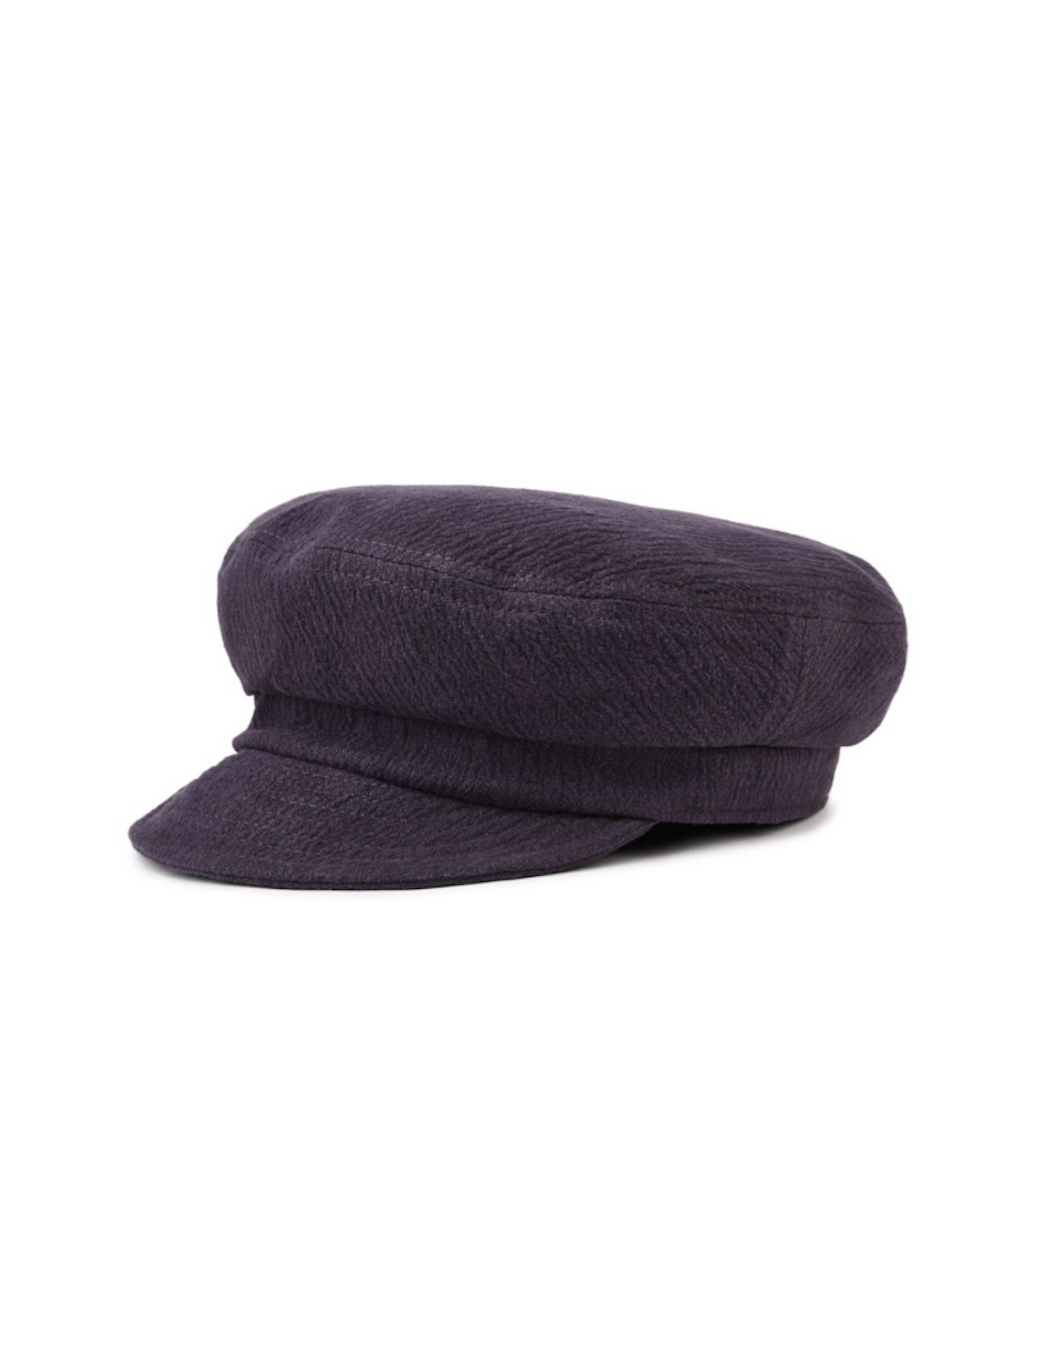 BRIXTON - Unstructured Fiddlers Cap